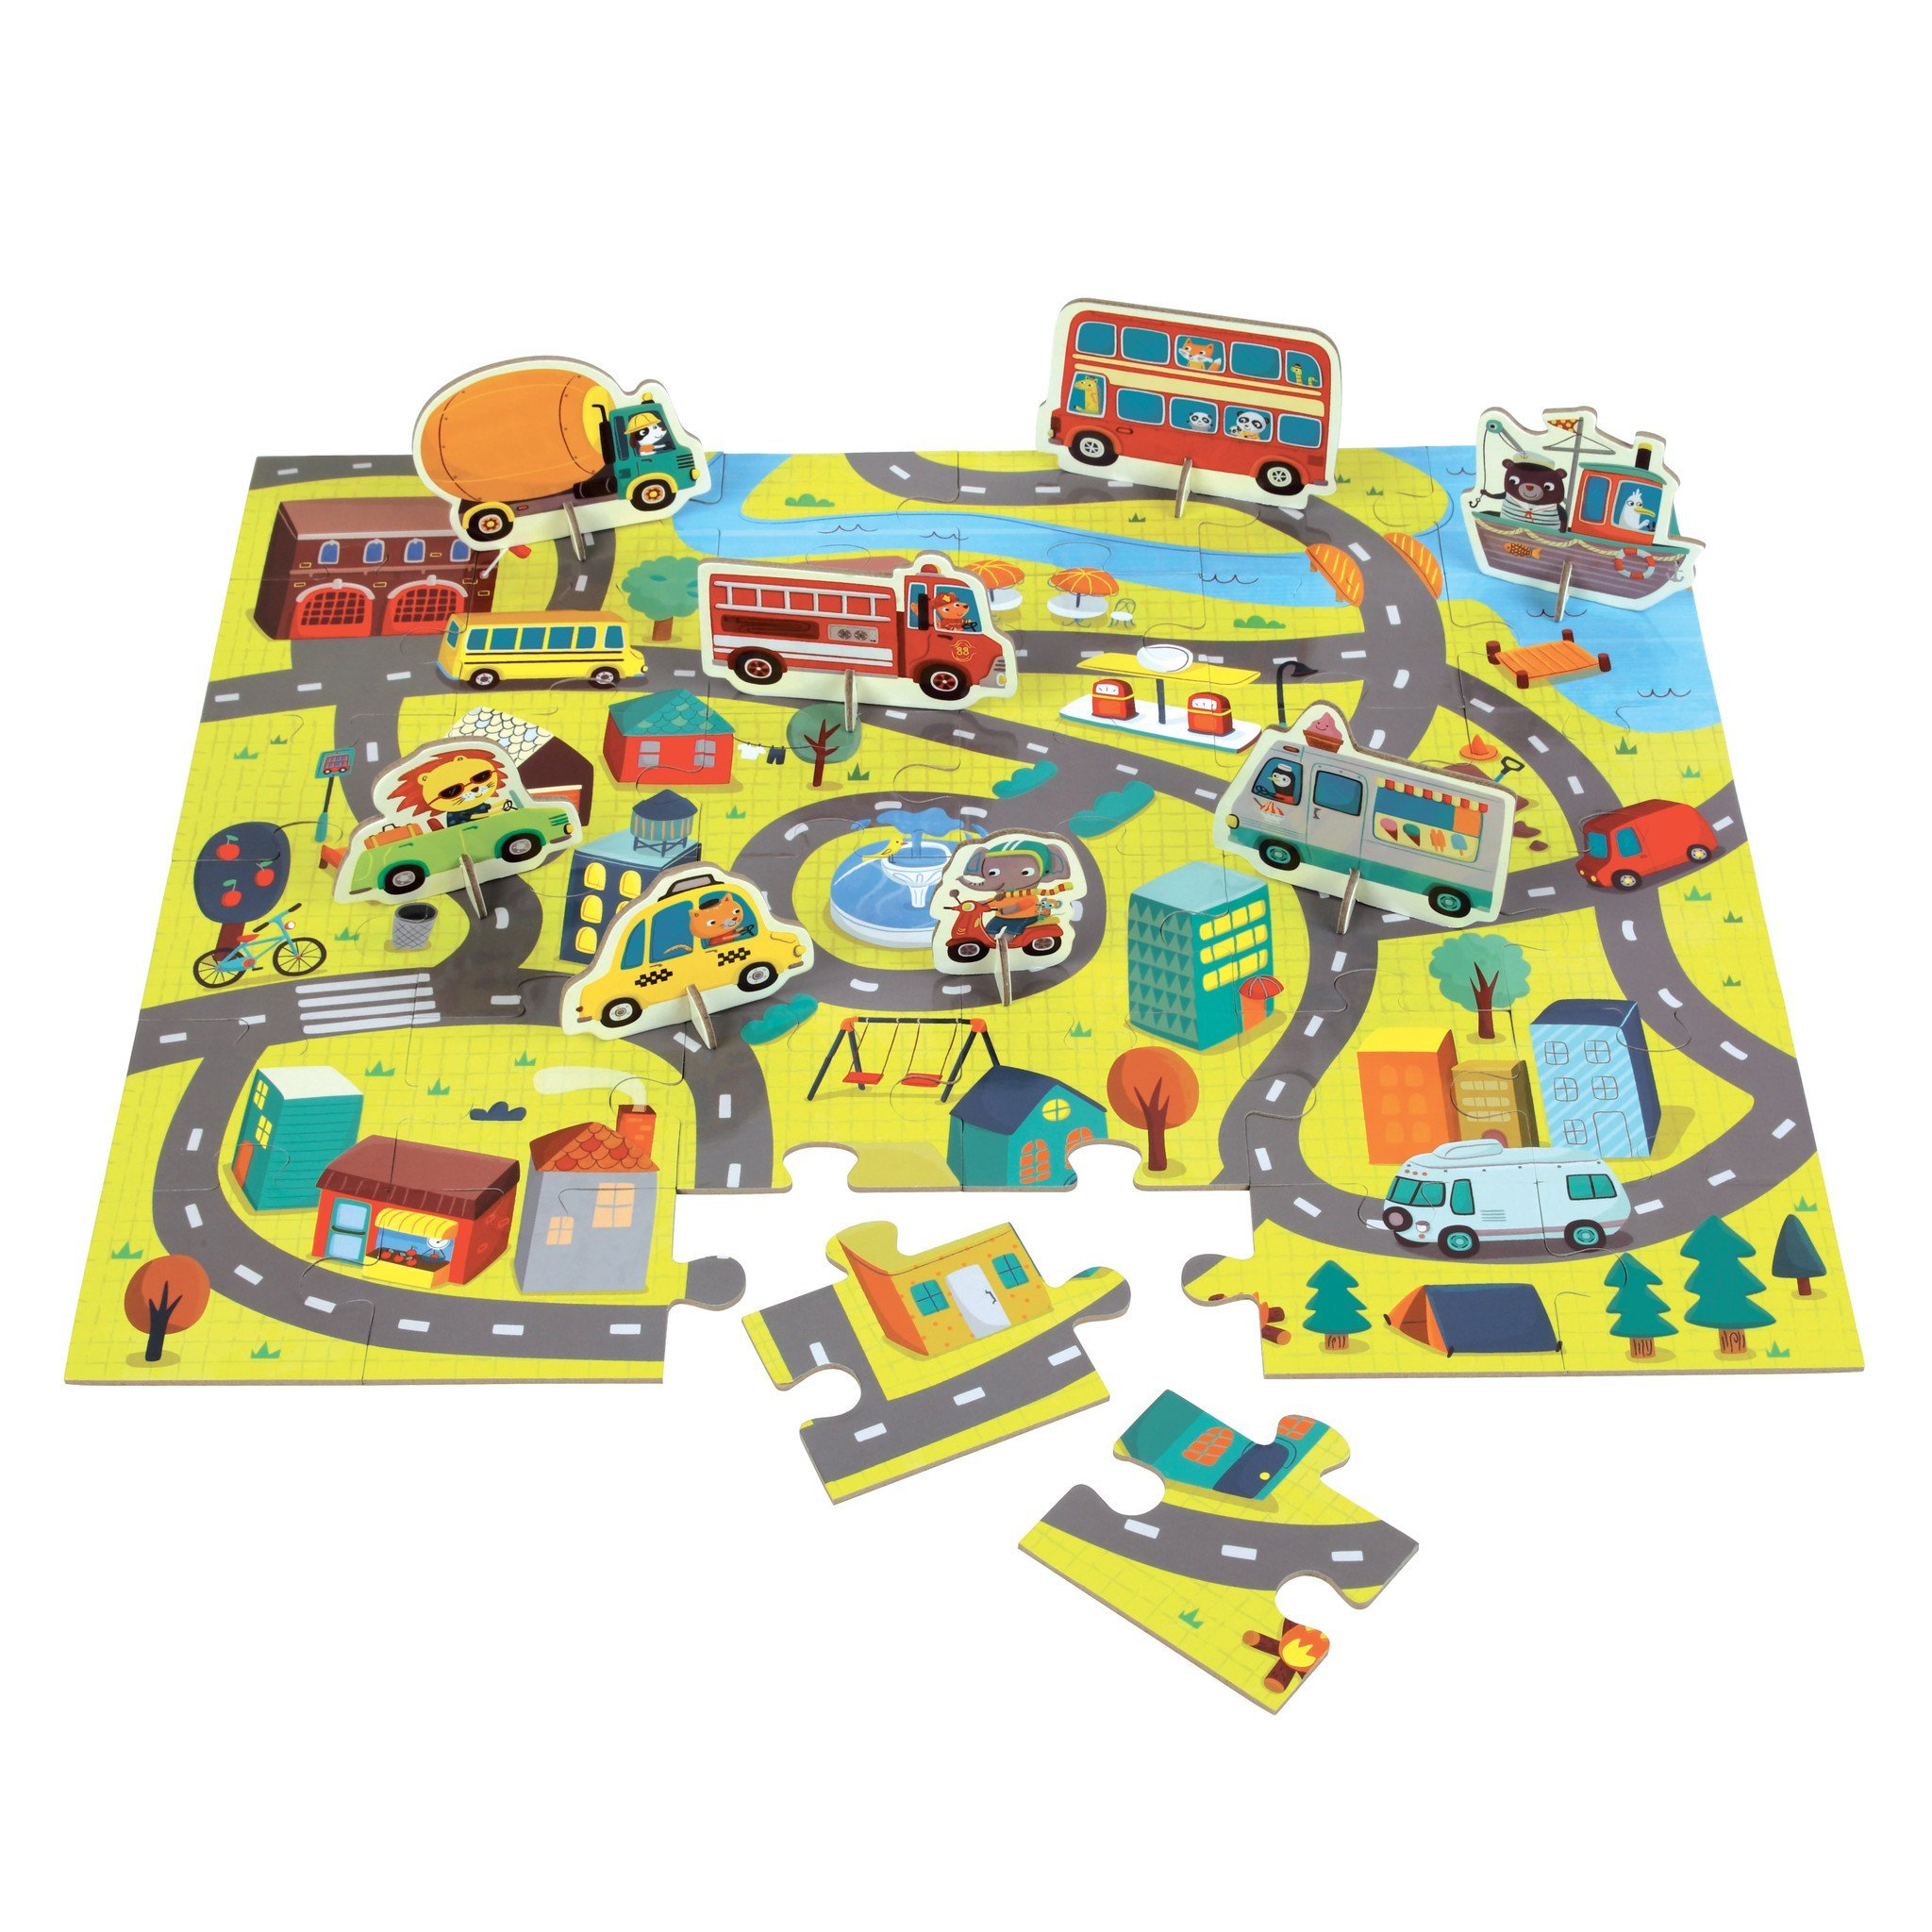 Mudpuppy - Around the Town Puzzle Play Set